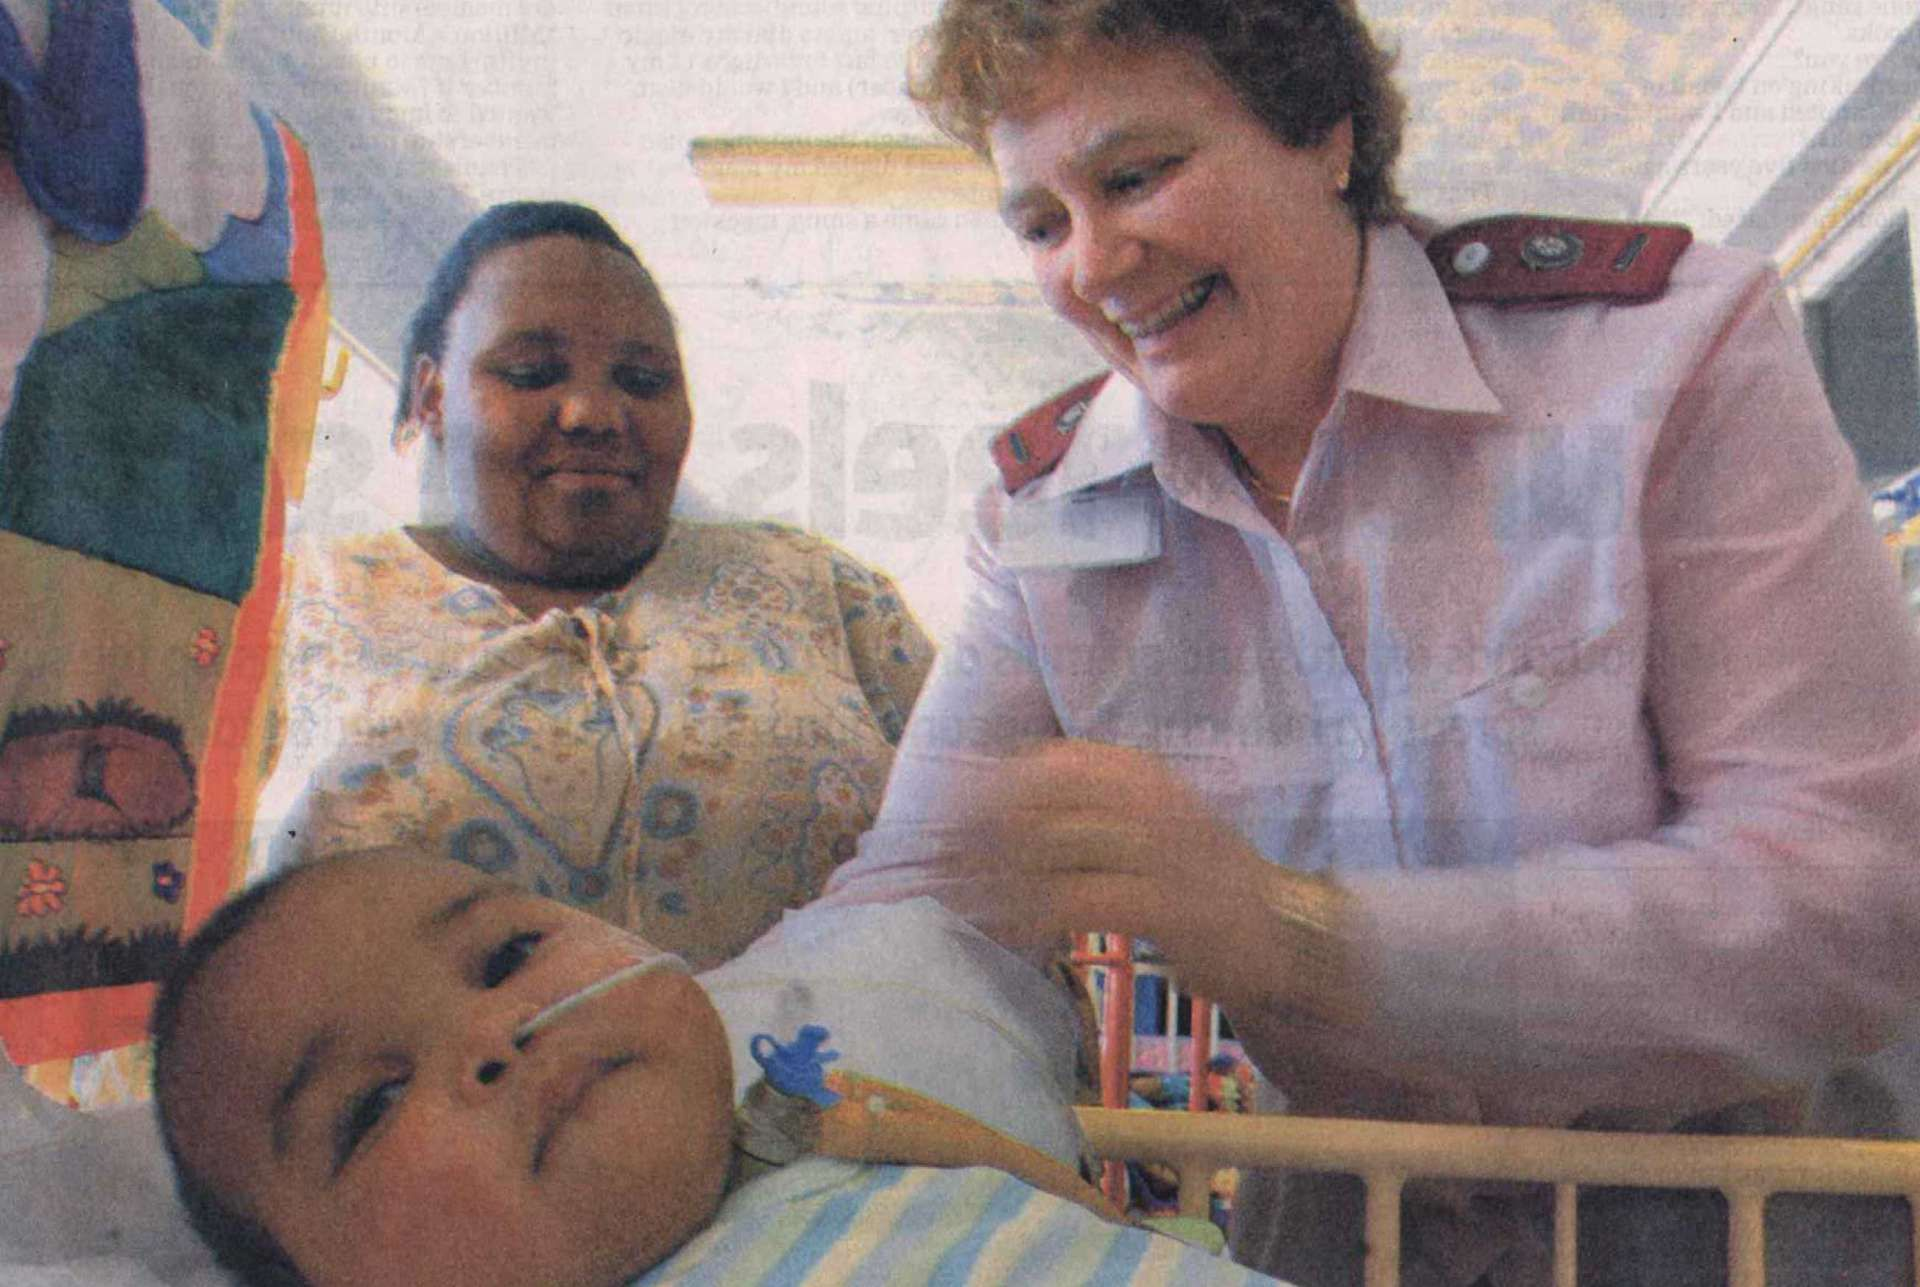 The Tracheostomy And Ventilation Breatheasy Home Care Programme At Red Cross War Memorial Childrens Hospital In Cape Town South Africa